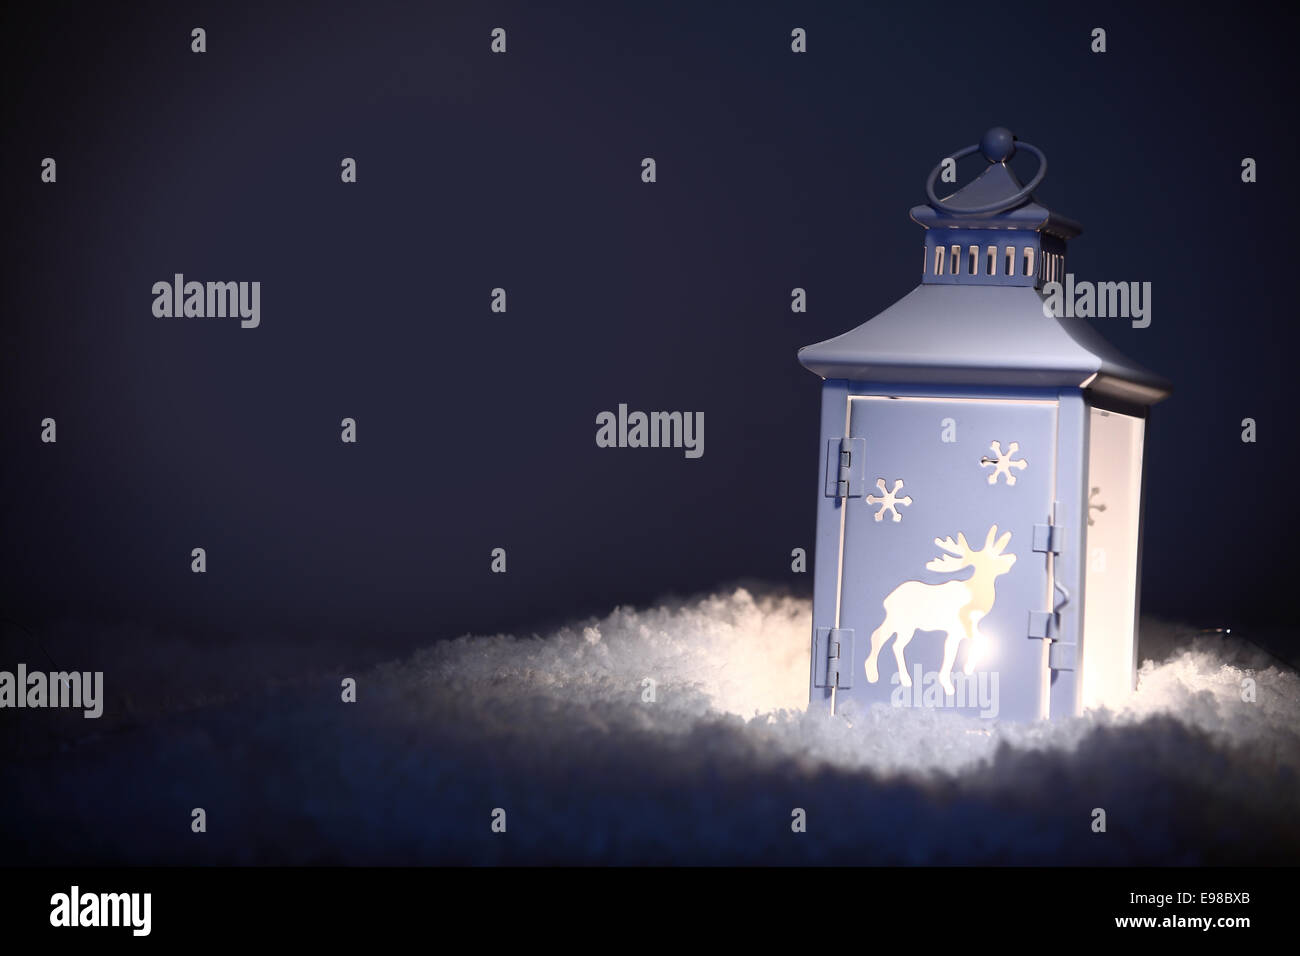 Decorative Christmas lantern standing on a bed of fresh winter snow shining in the night as a guiding light, with - Stock Image